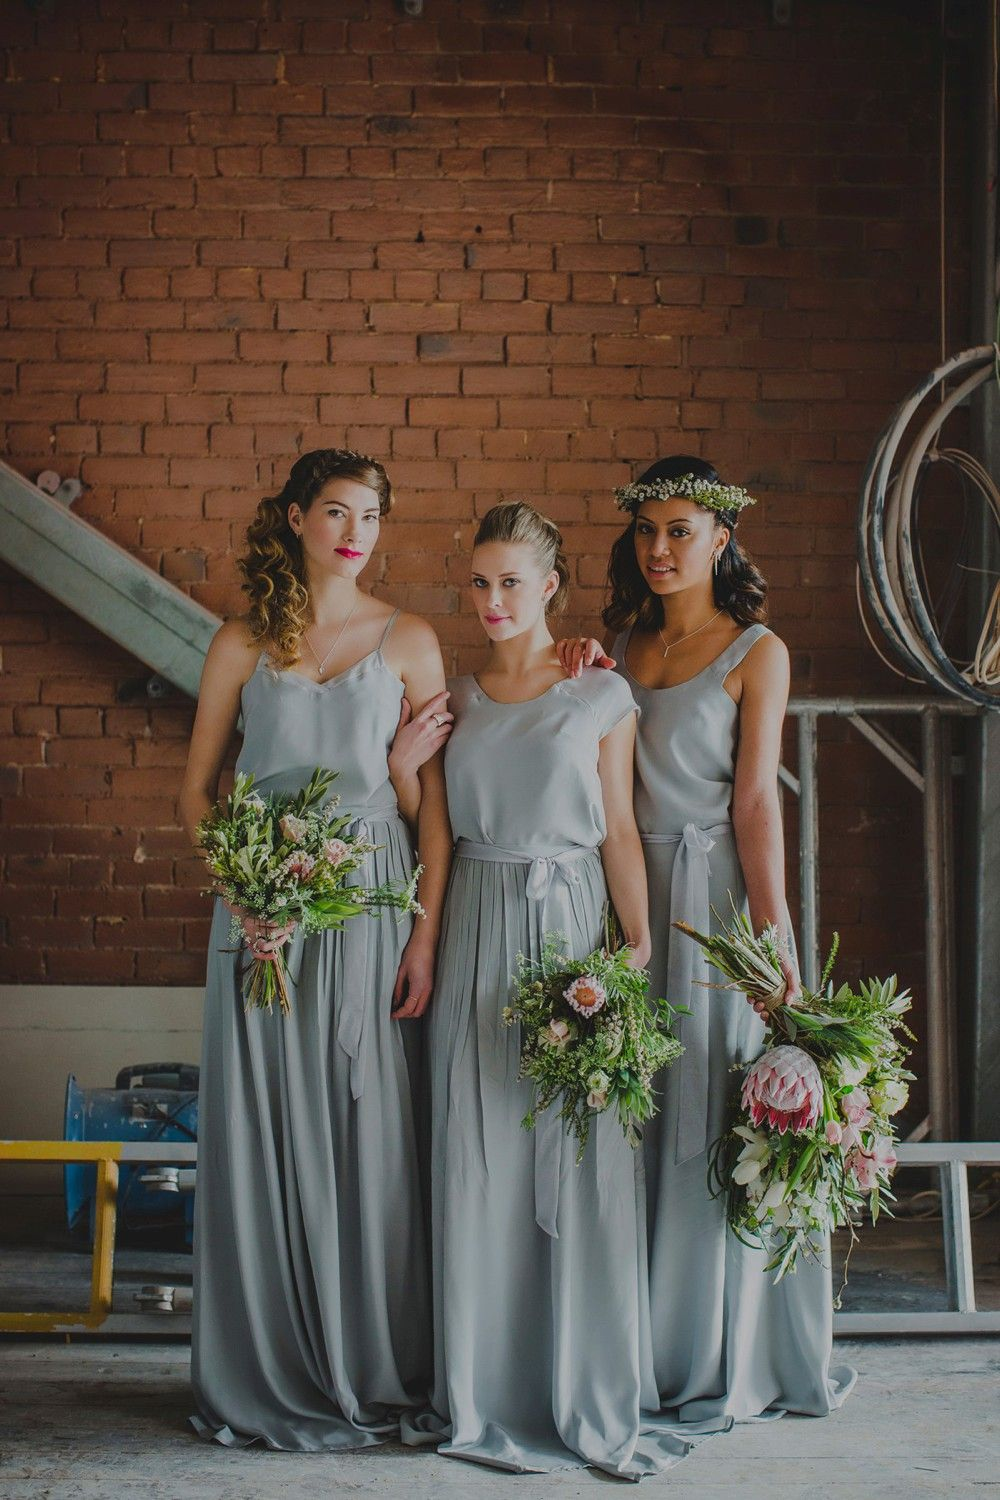 Bridesmaids Dresses Made To Order By Caroline Campion | Brick images ...